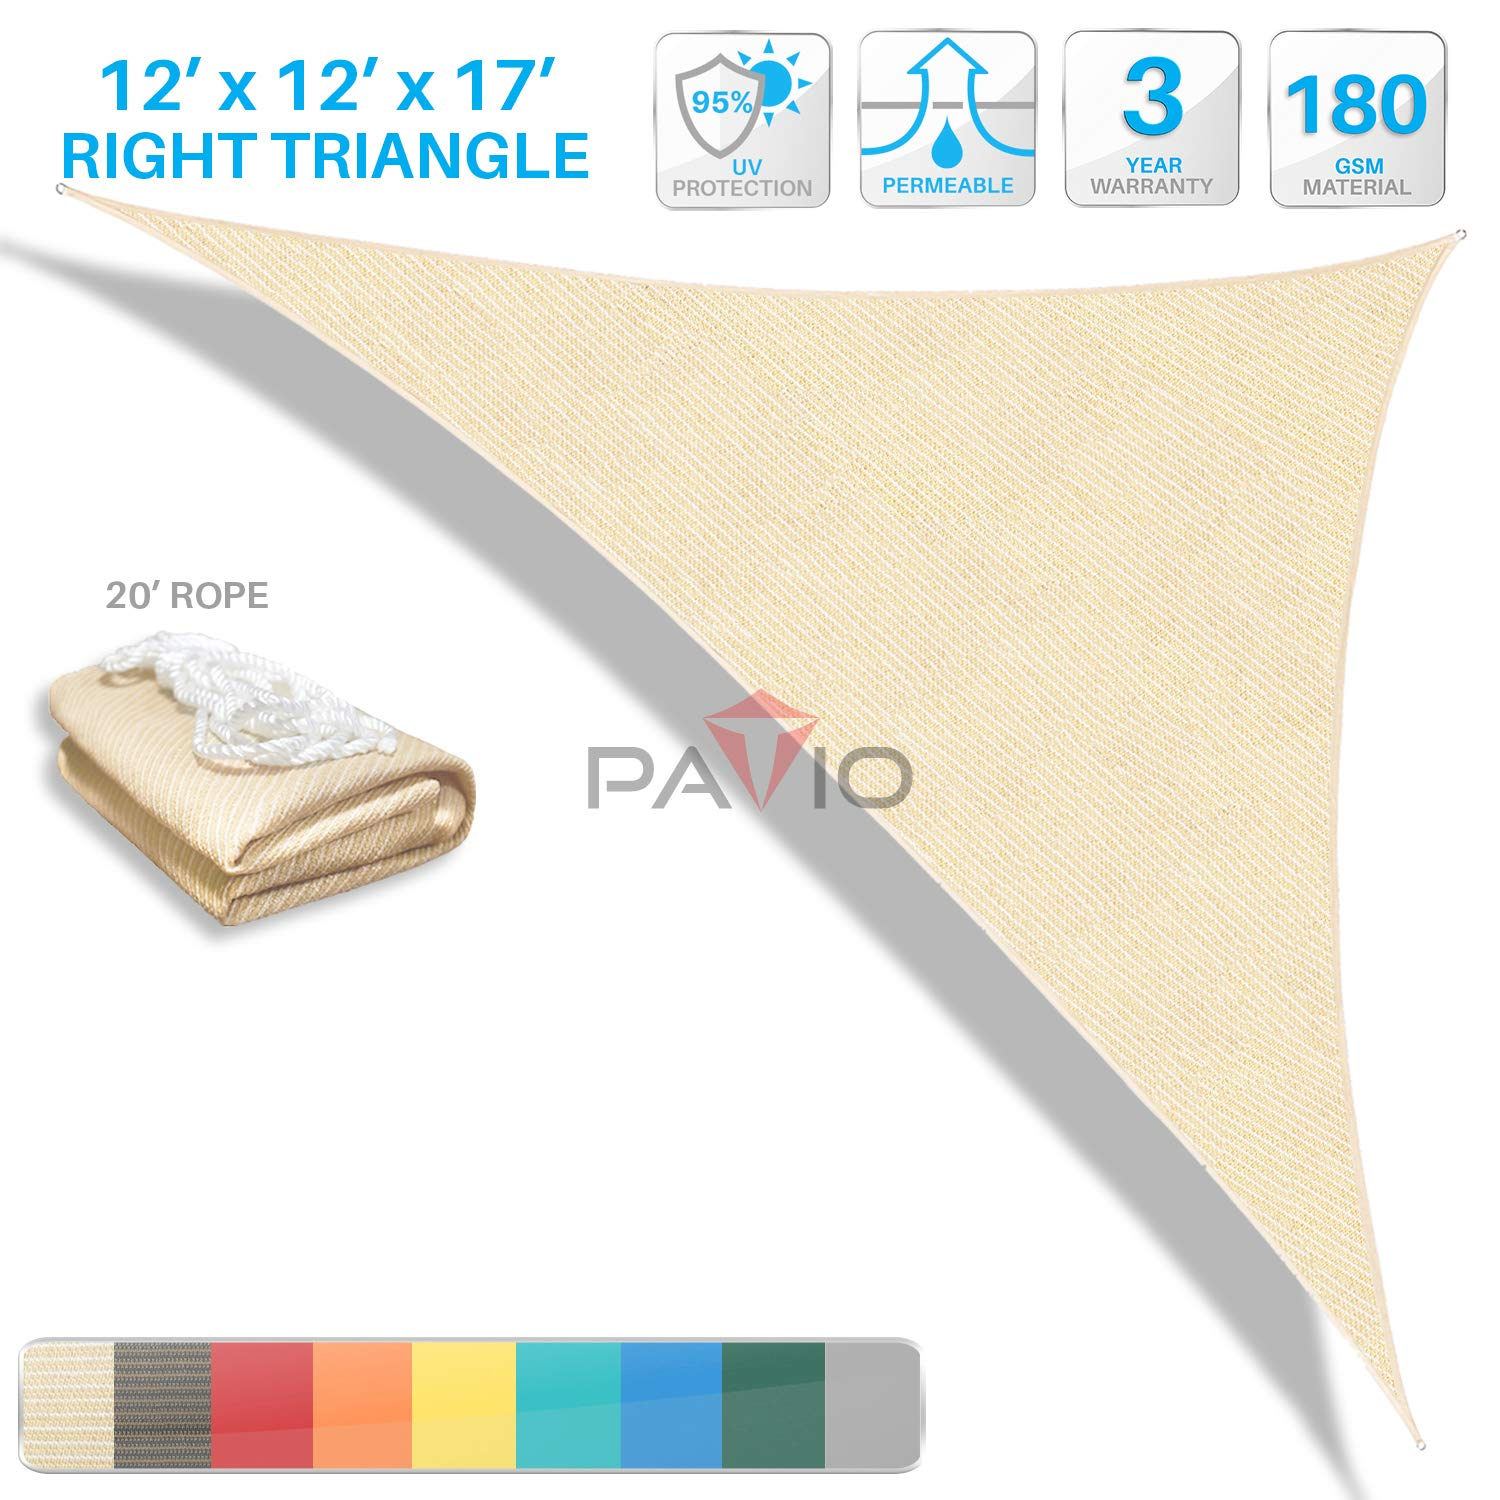 Patio Paradise 12' x 12' x 17' Beige Sun Shade Sail Right Triangle Canopy, Permeable UV Block Fabric Durable Outdoor, Customized Available by Patio